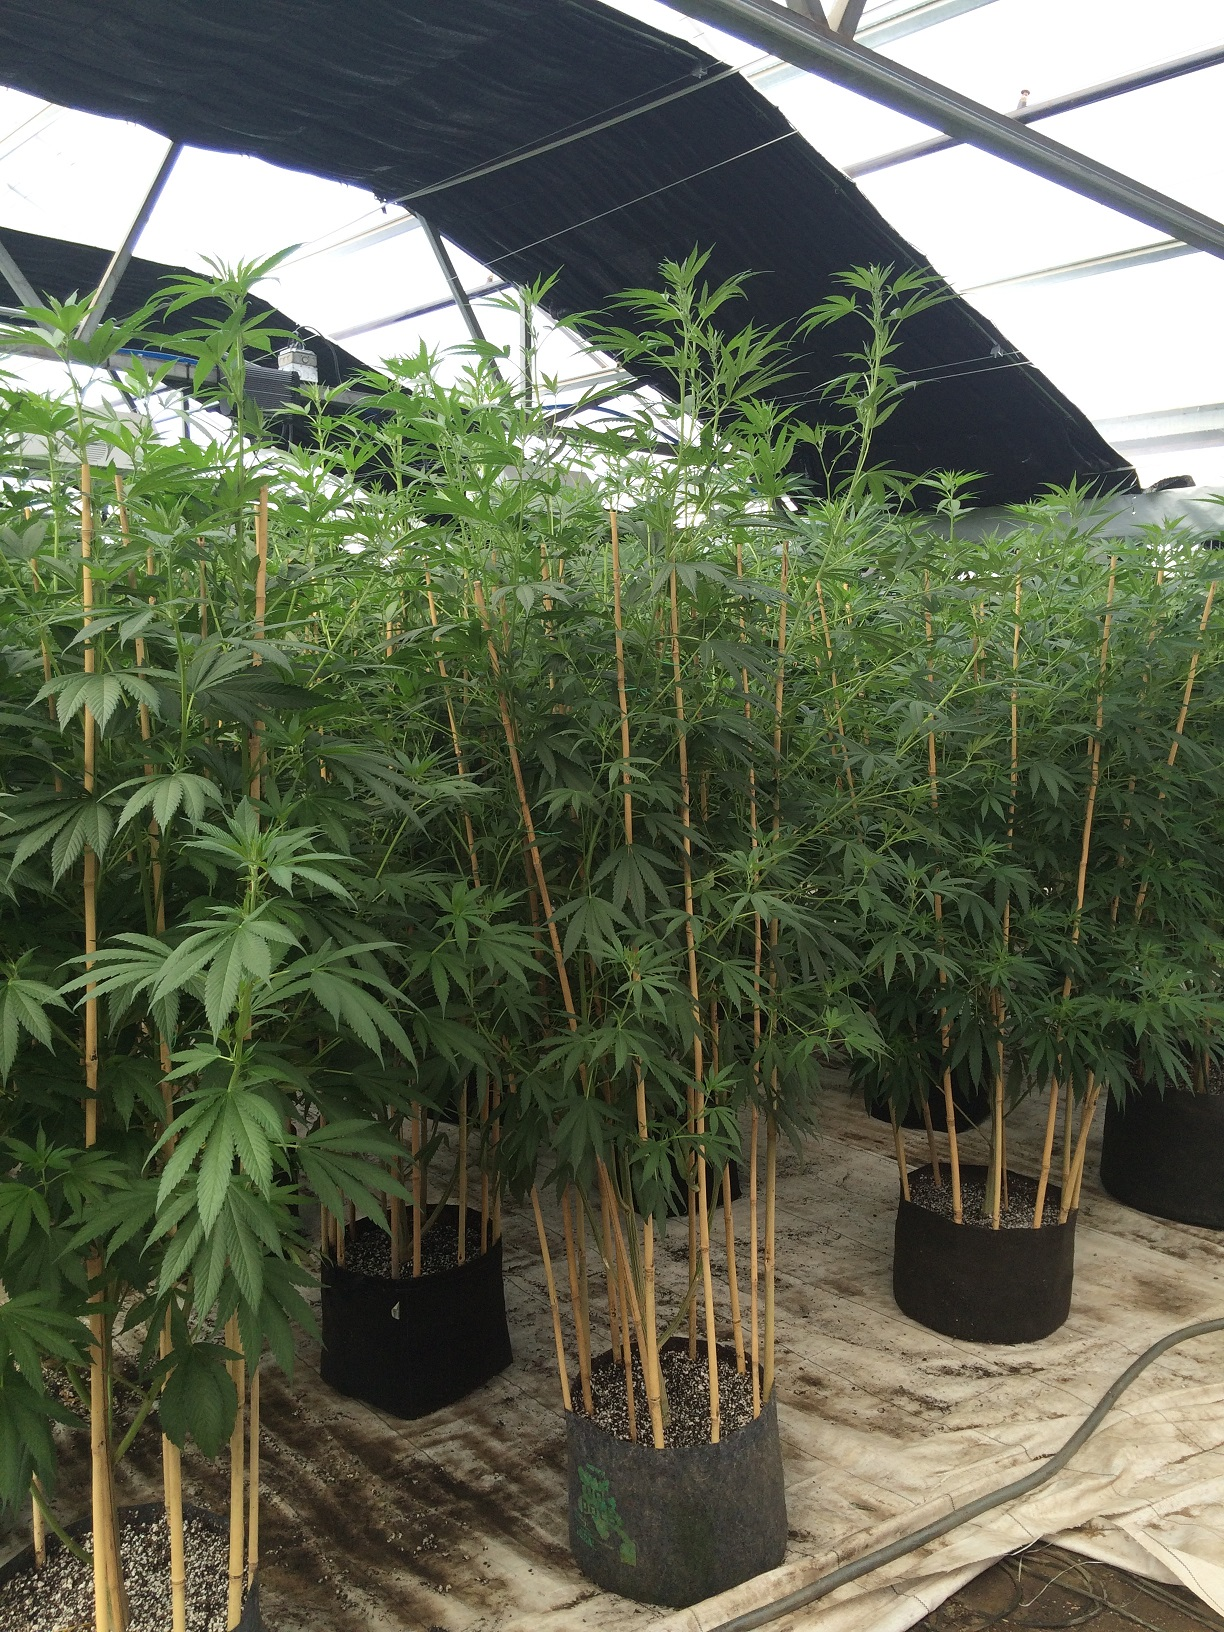 Greenhouse Growing – It's Kind of a Big Deal!